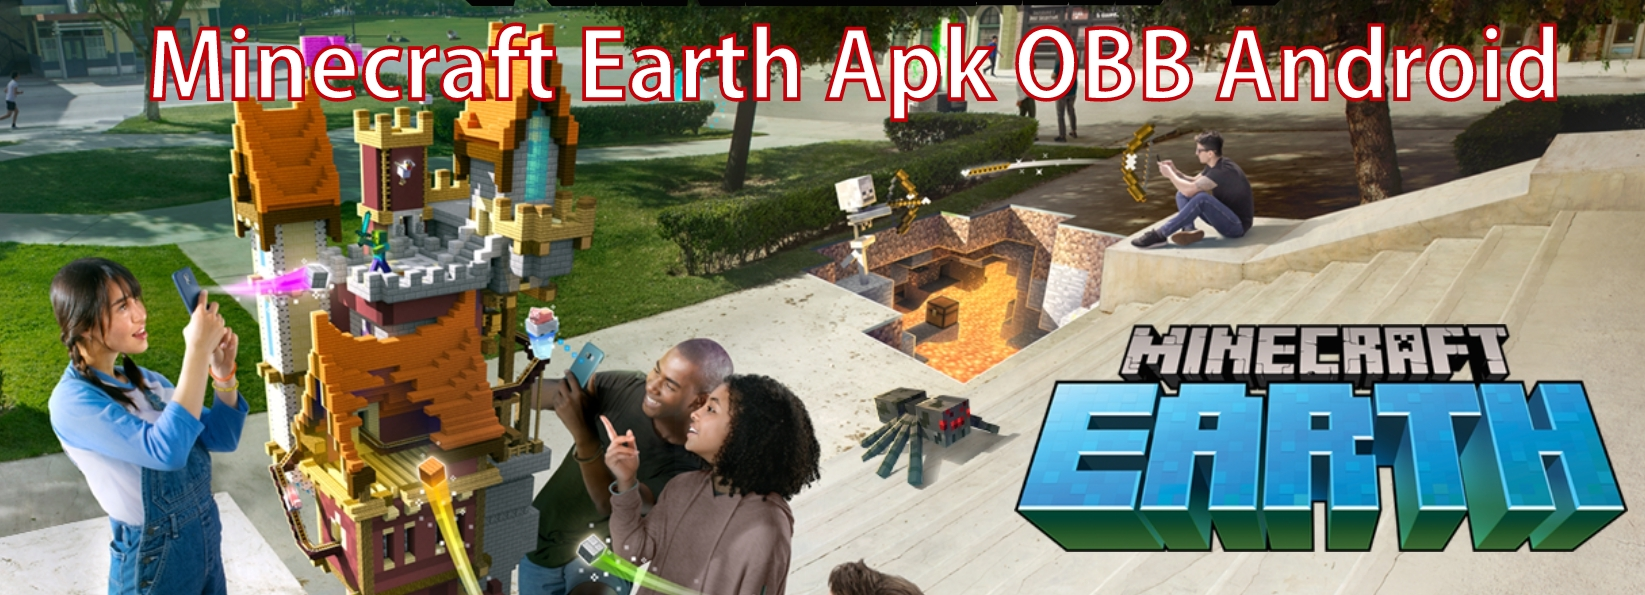 Minecraft Earth Apk for Android Download and Minecraft your